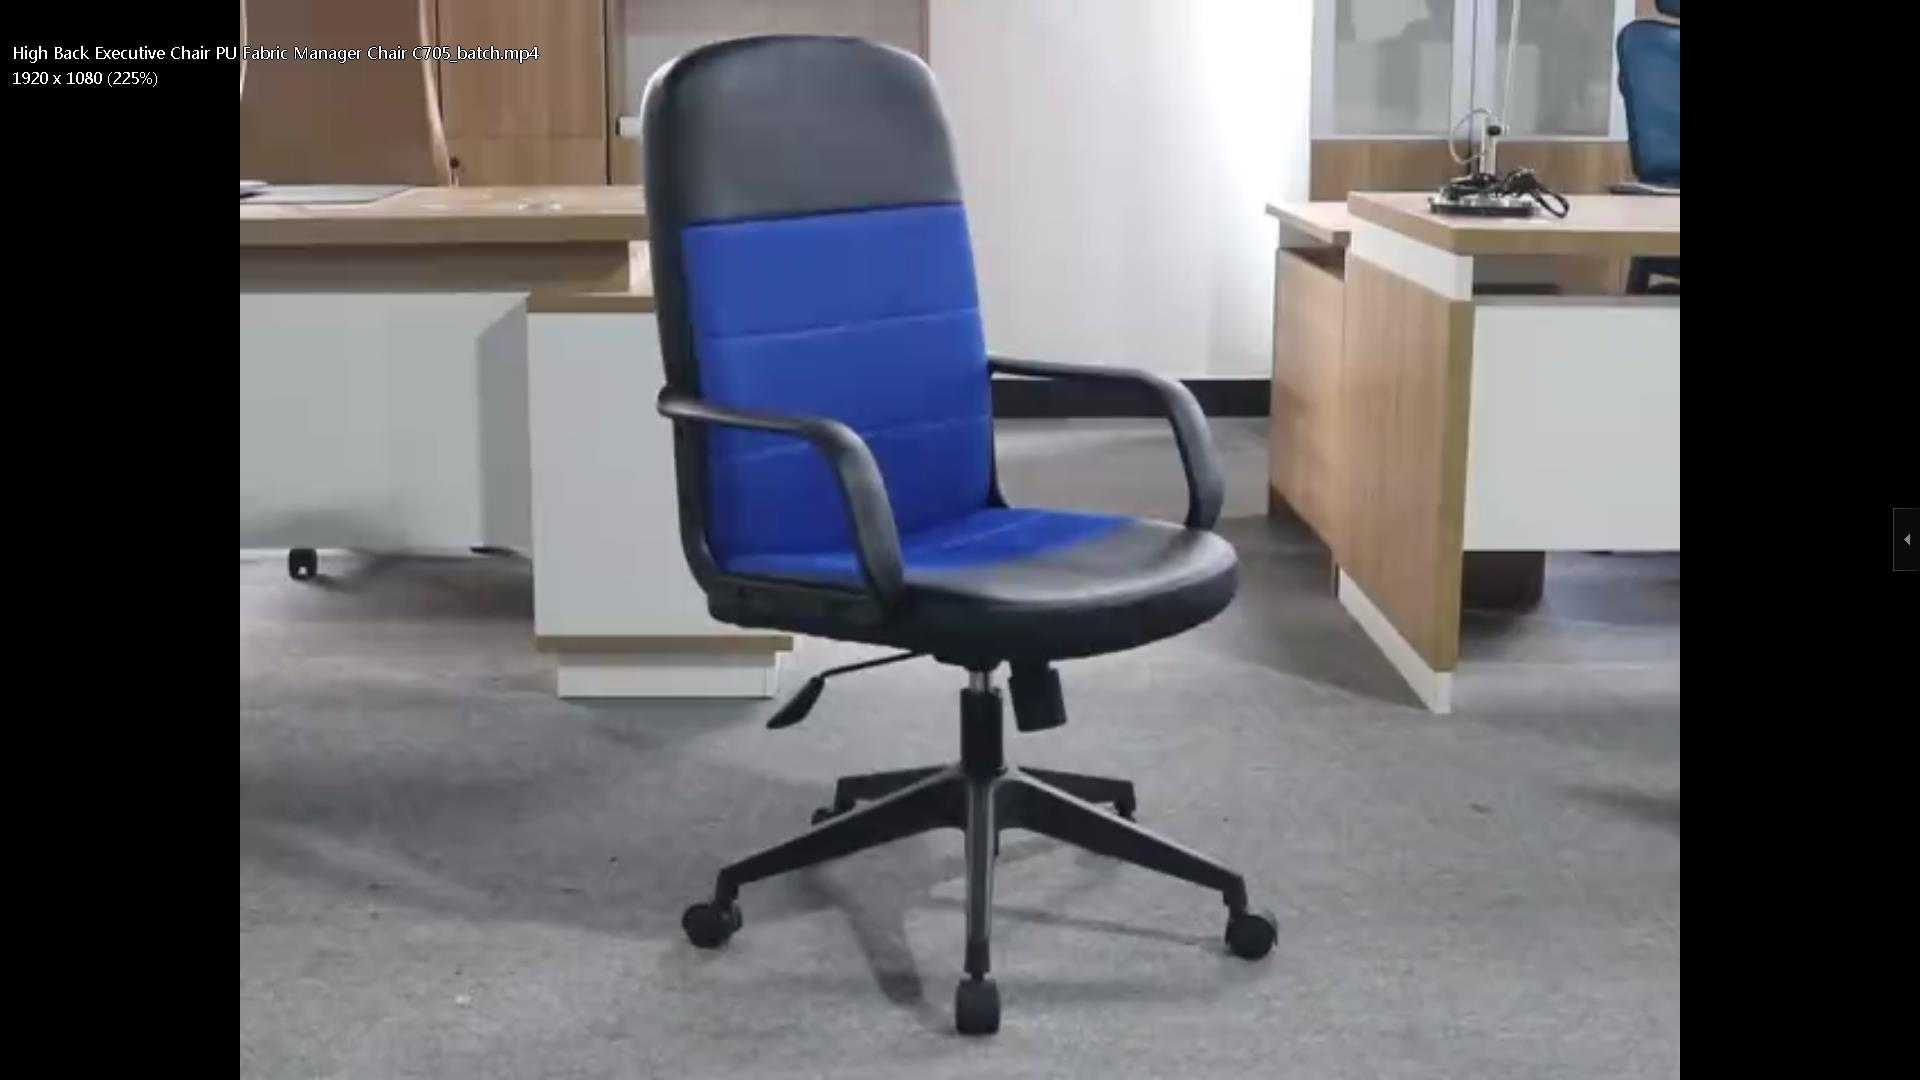 High Back Executive Chair PU Fabric Manager Chair C705